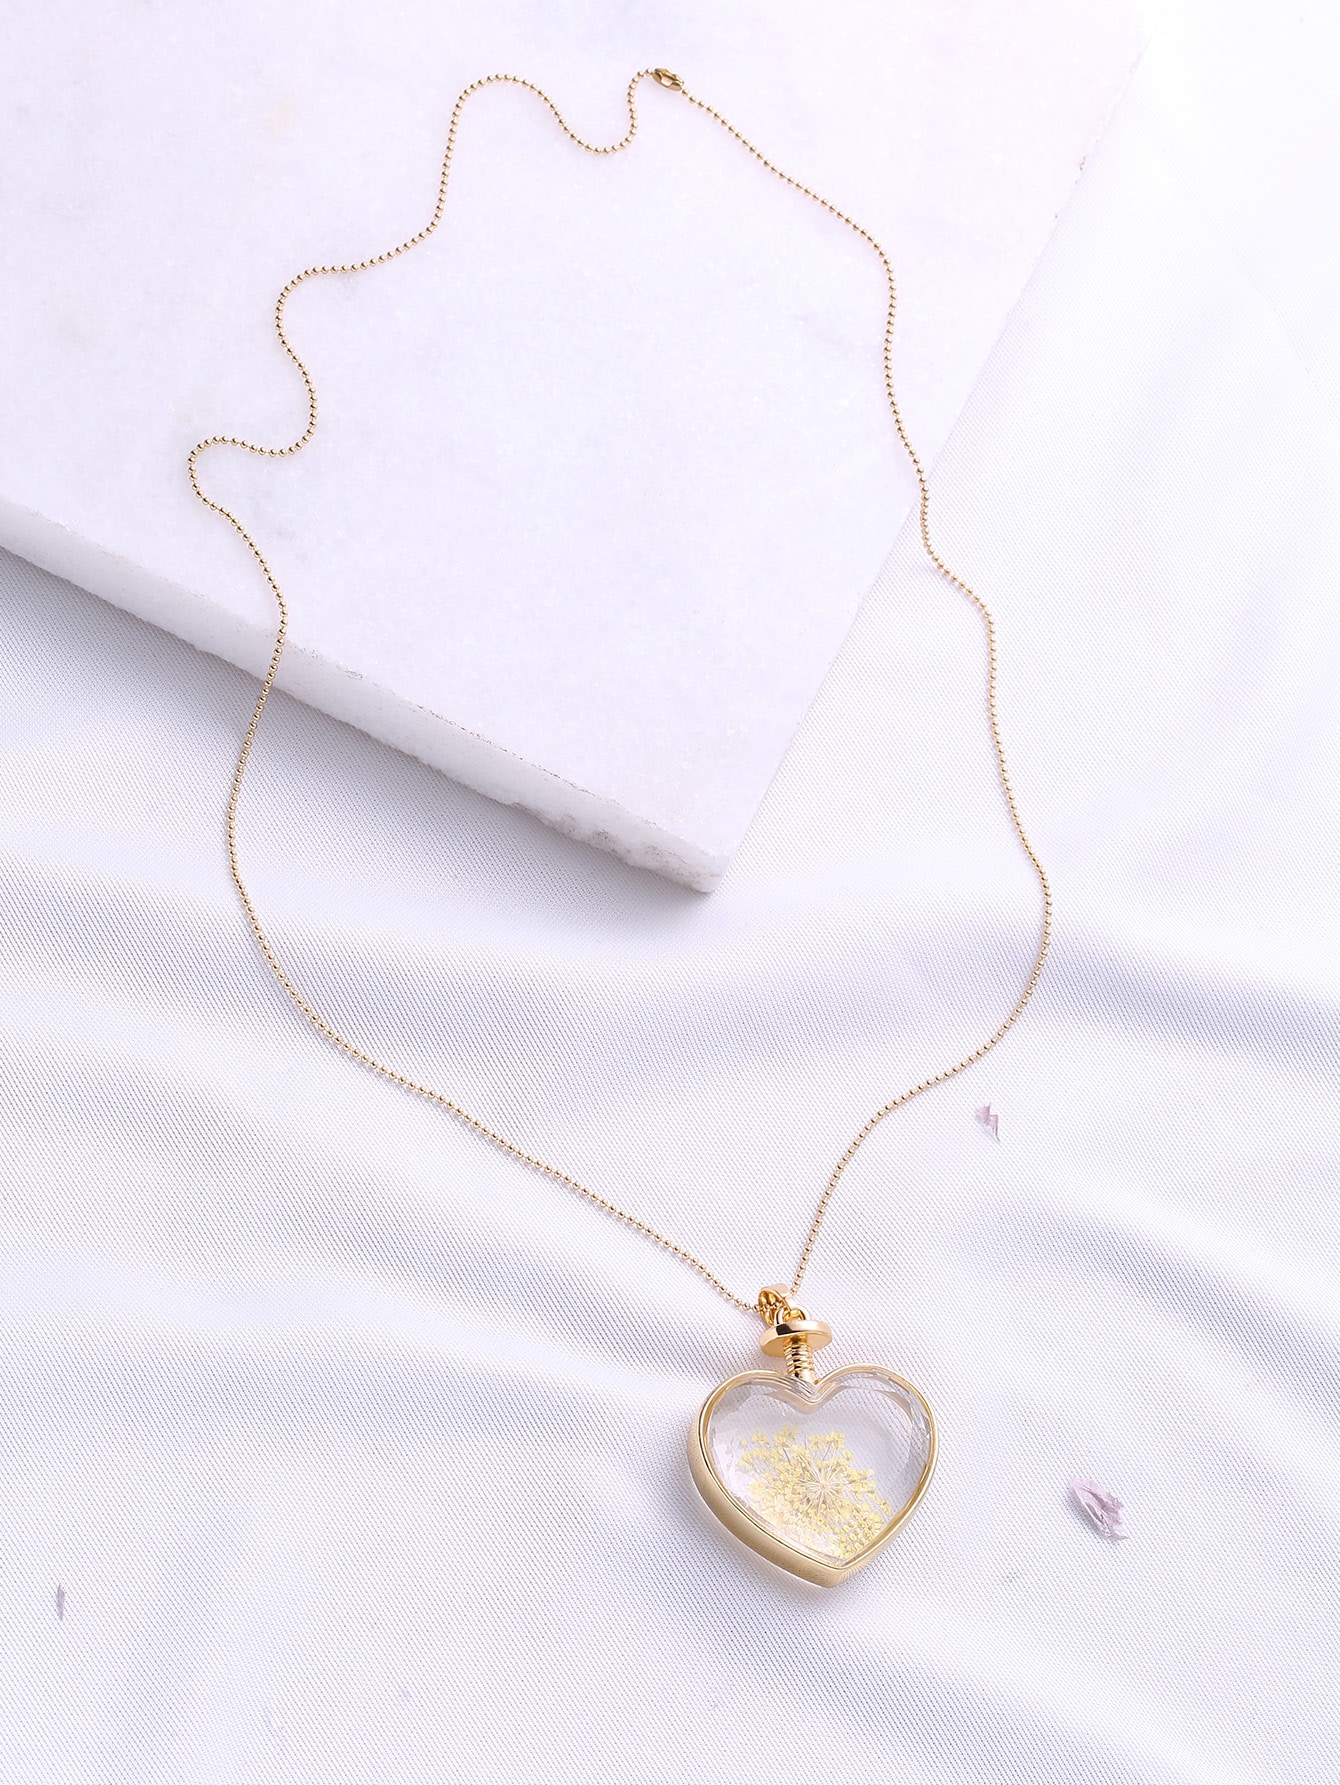 Heart Pendant Gold Chain Necklace heart of gold